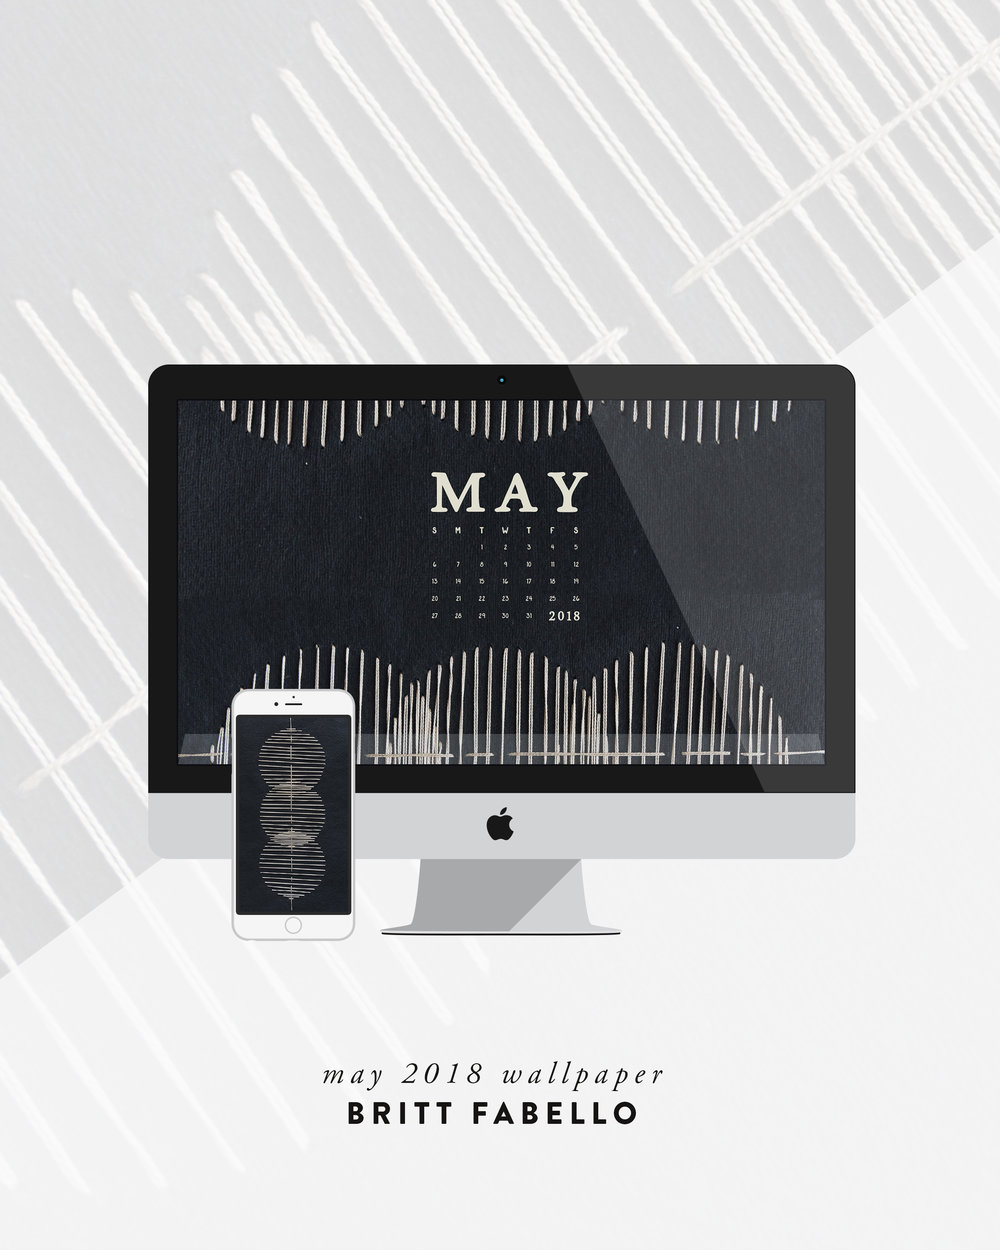 Computer & Phone Wallpaper: May 2018 Calendar & Art | Britt Fabello